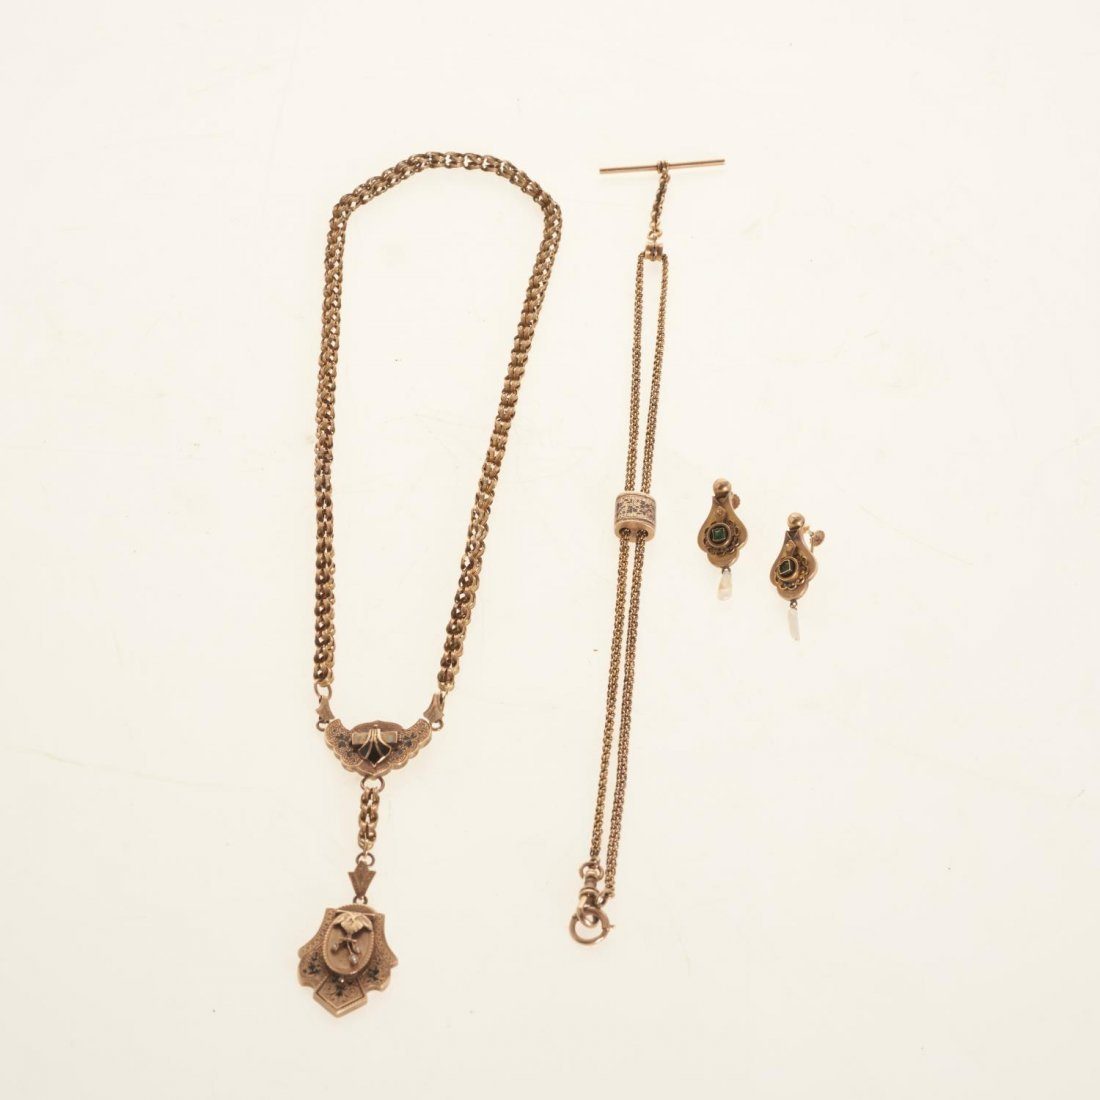 Victorian style gold jewelry